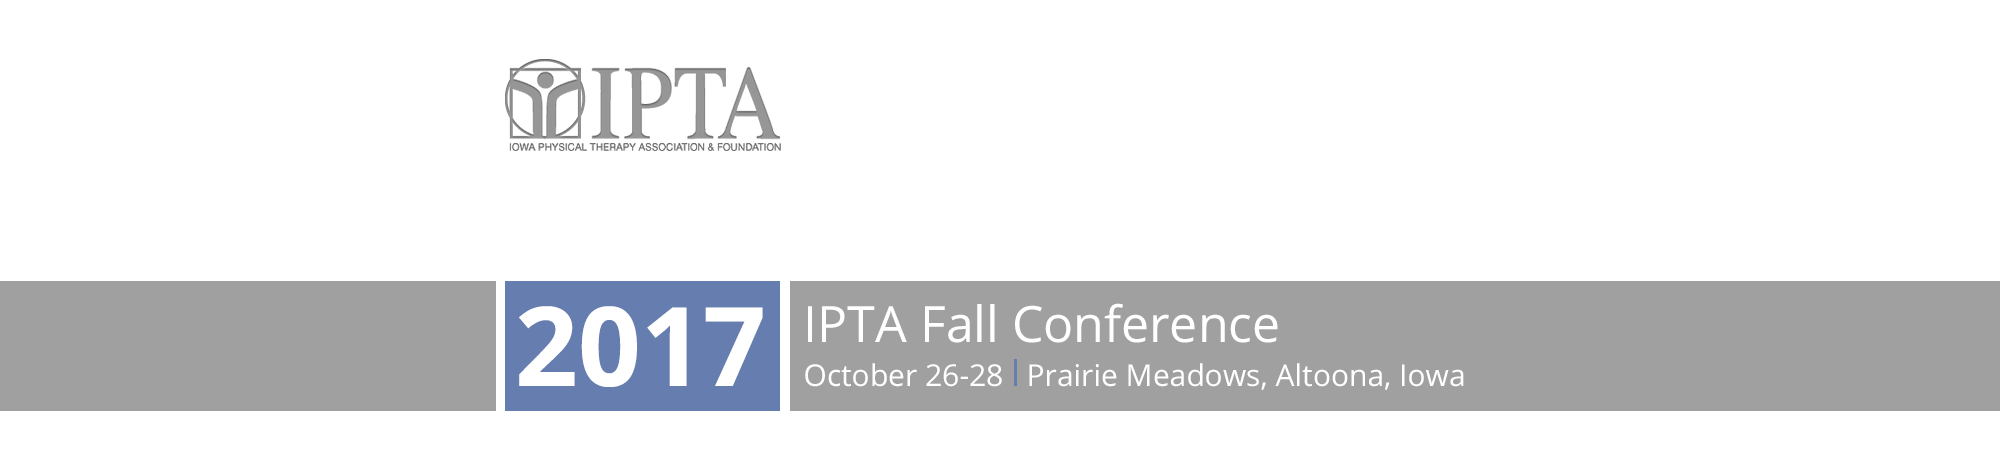 2017 IPTA Fall Conference